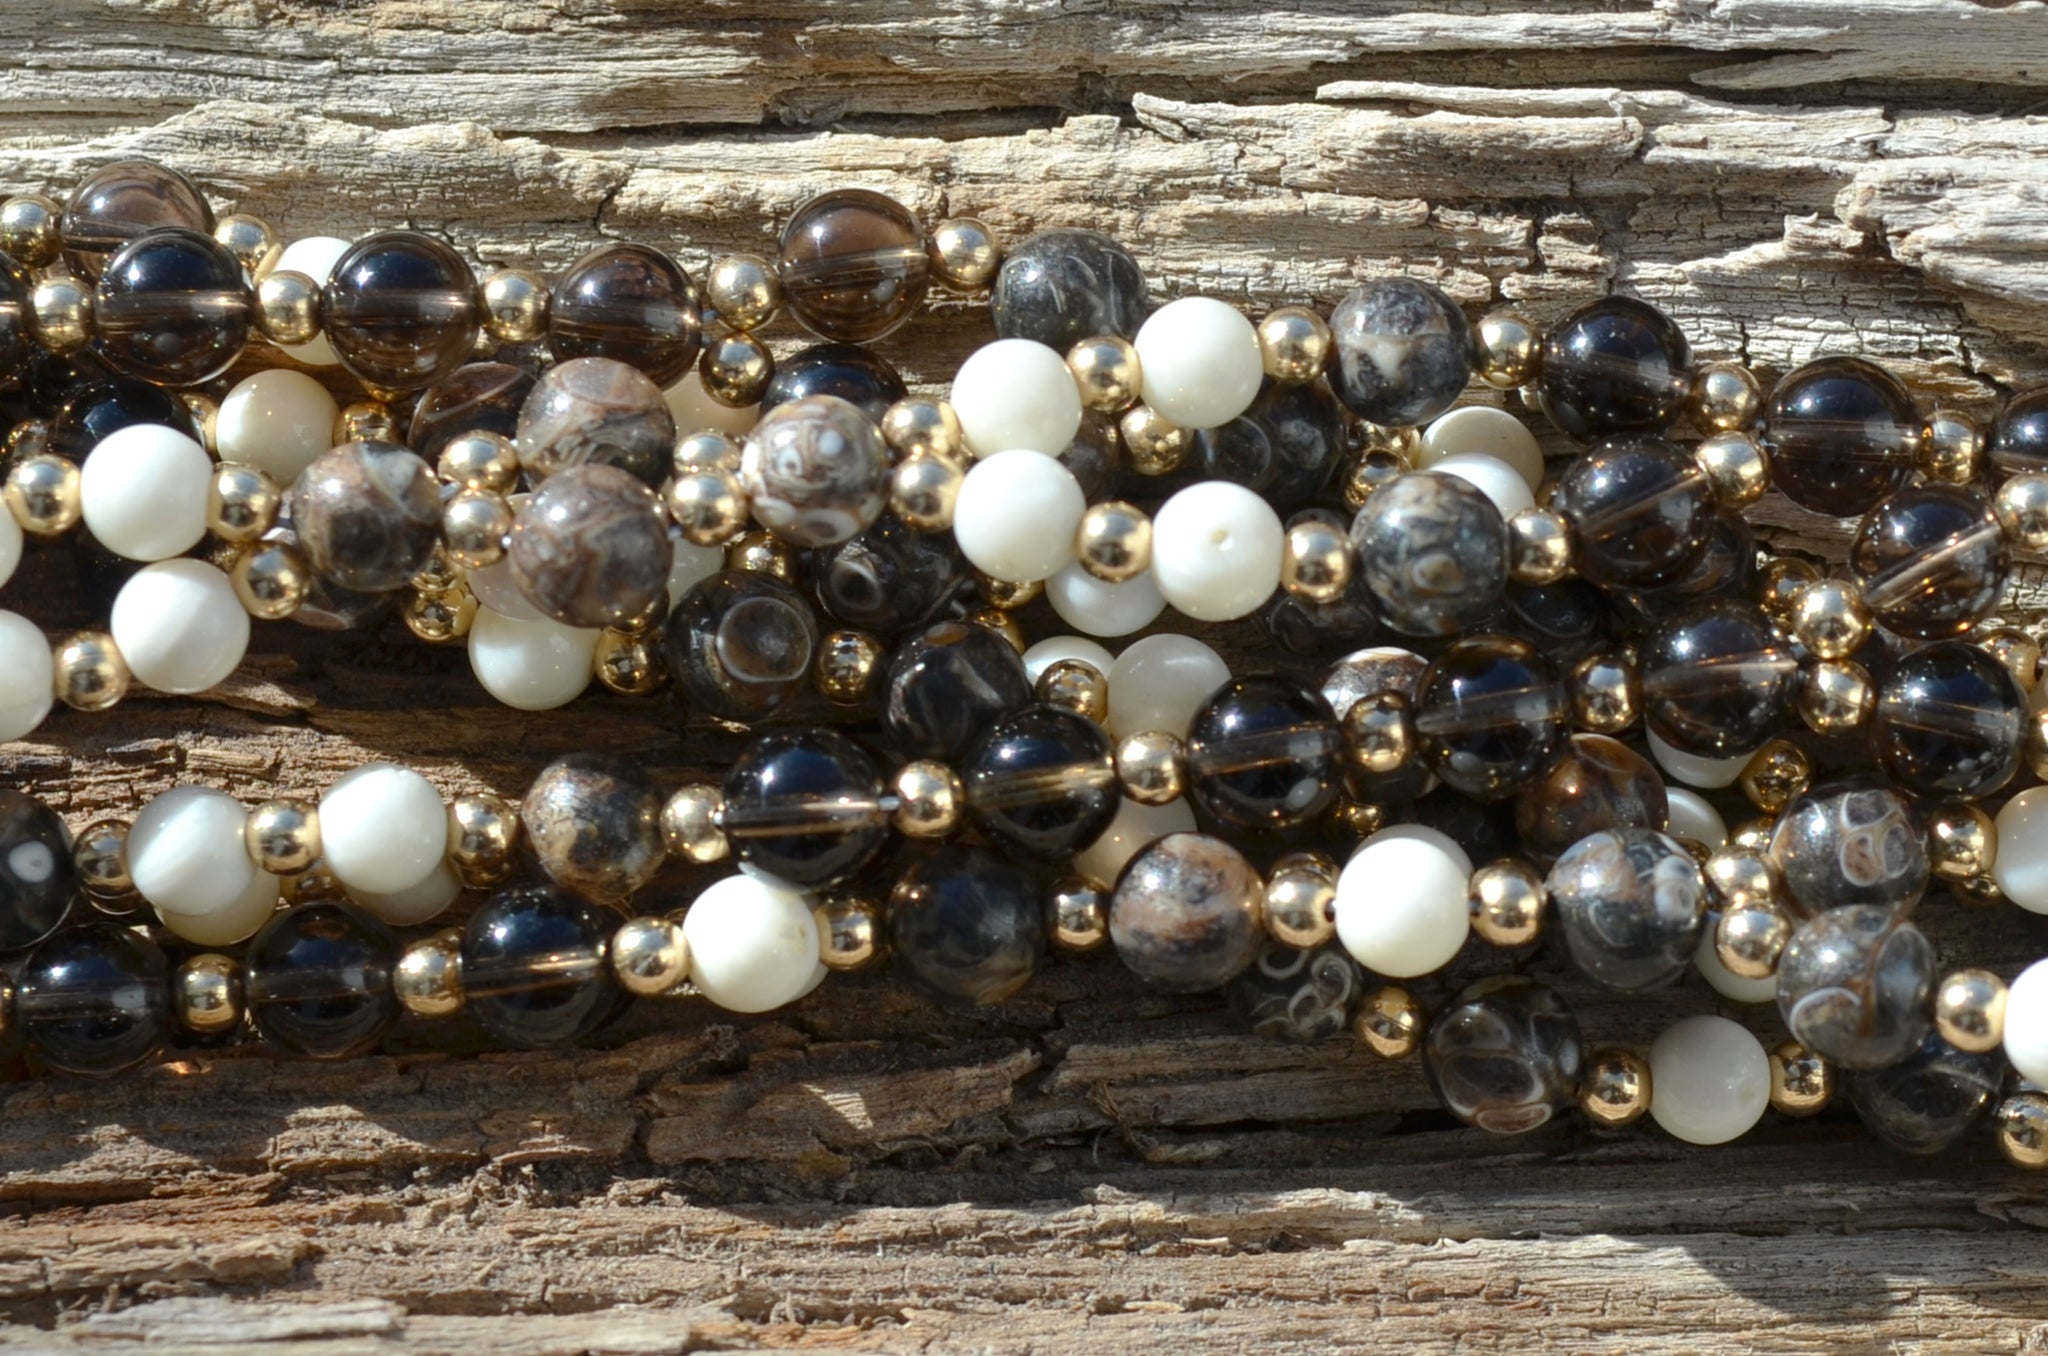 6mm Turitella Agate, 5mm White Coral with 6mm Smoky Quartz and Gold Filled